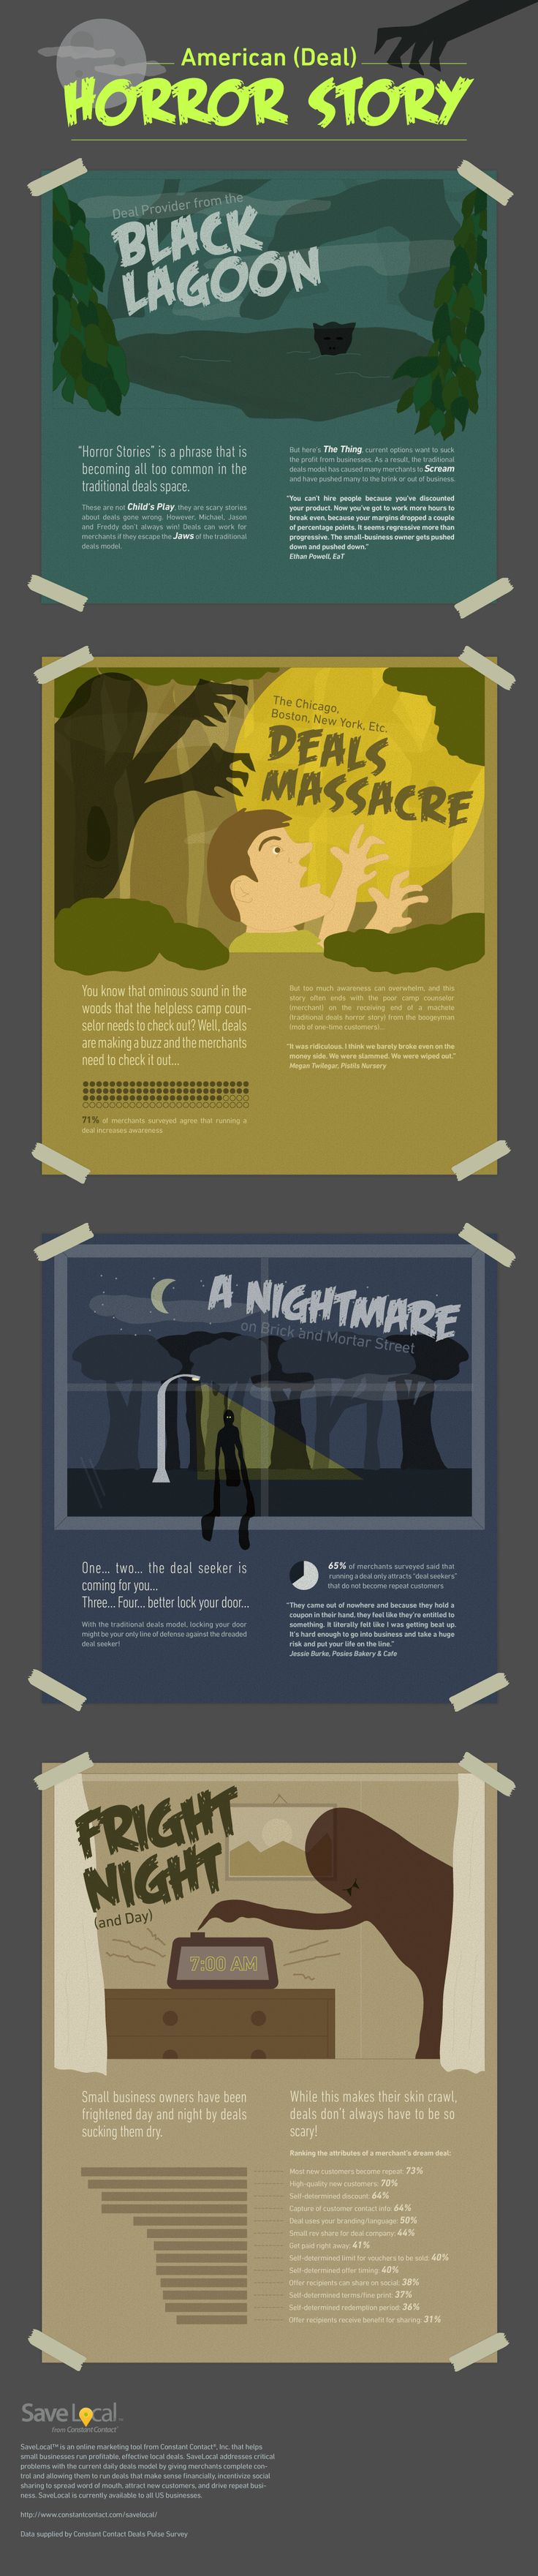 best images about infographics halloween scary for merchants running daily deals can be mighty scary here s an infographic from constant contact that shows what can go wrong daily deals for us